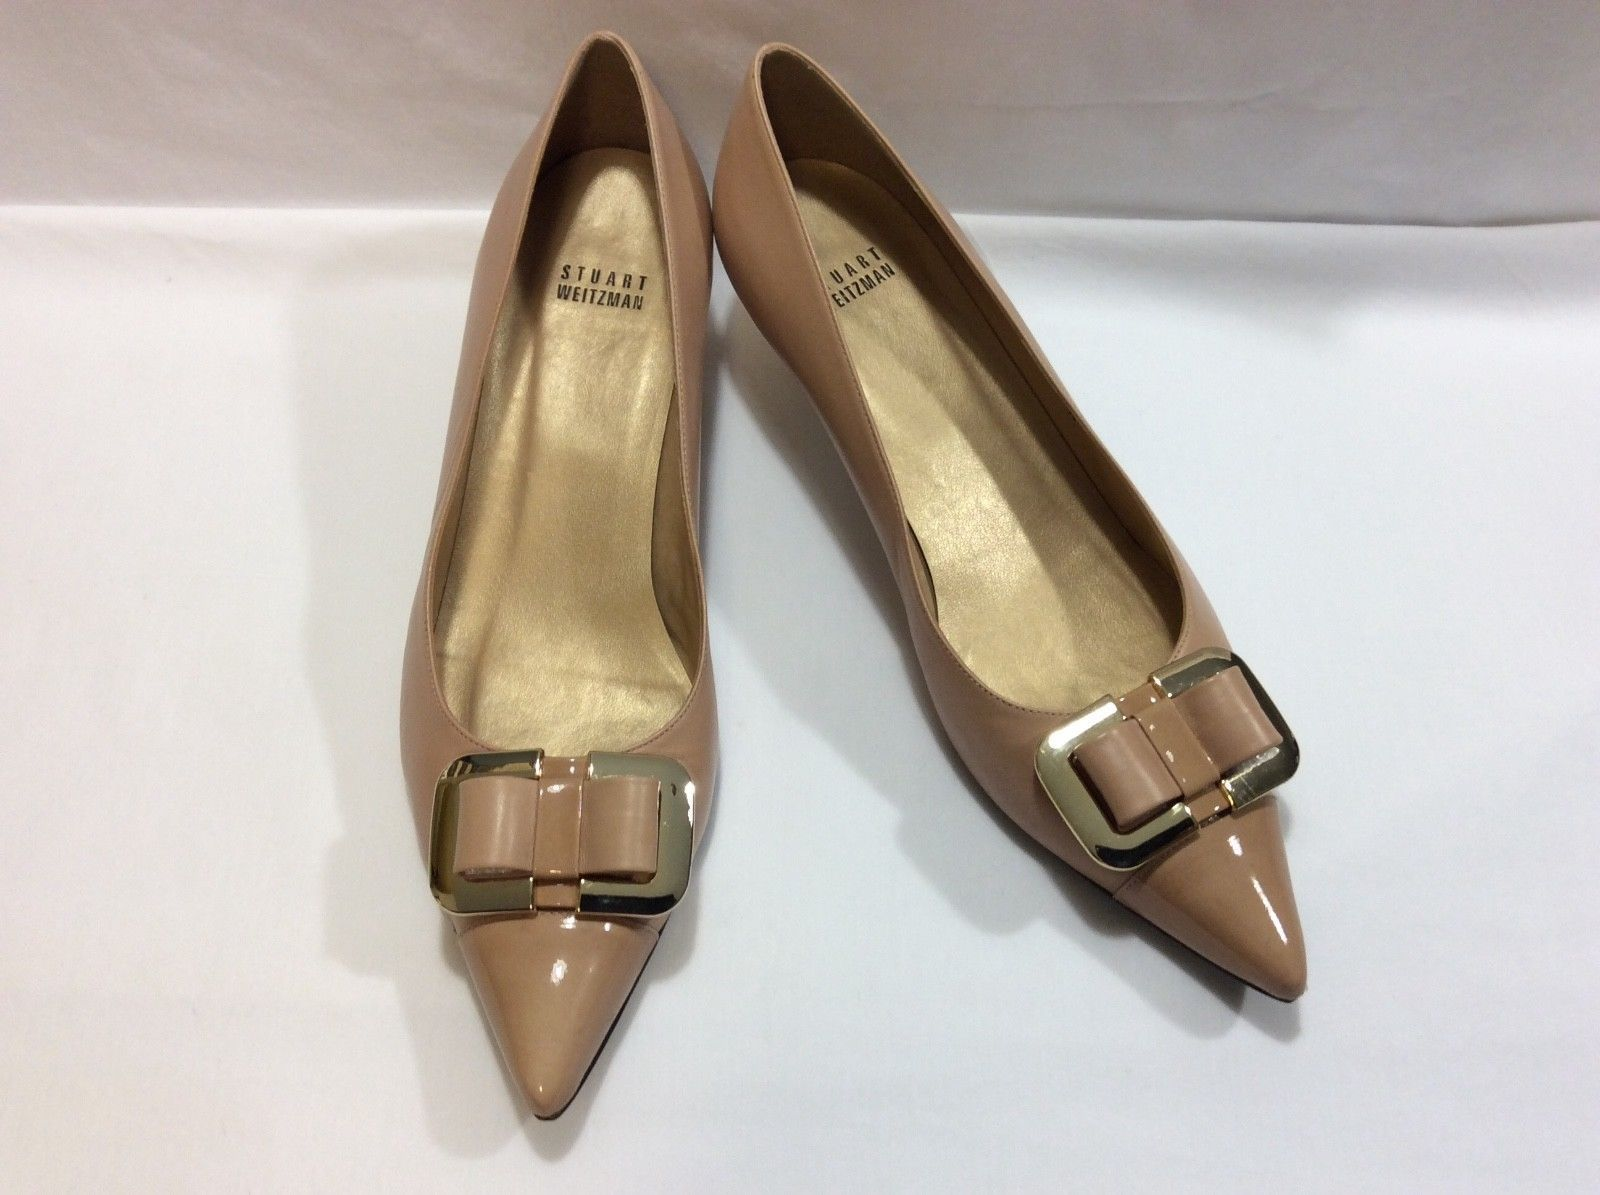 ff3f909ff78 STUART WEITZMAN NUDE LEATHER   PATENT LEATHER BOW KITTEN HEEL PUMPS 9.5 M  IN EUC